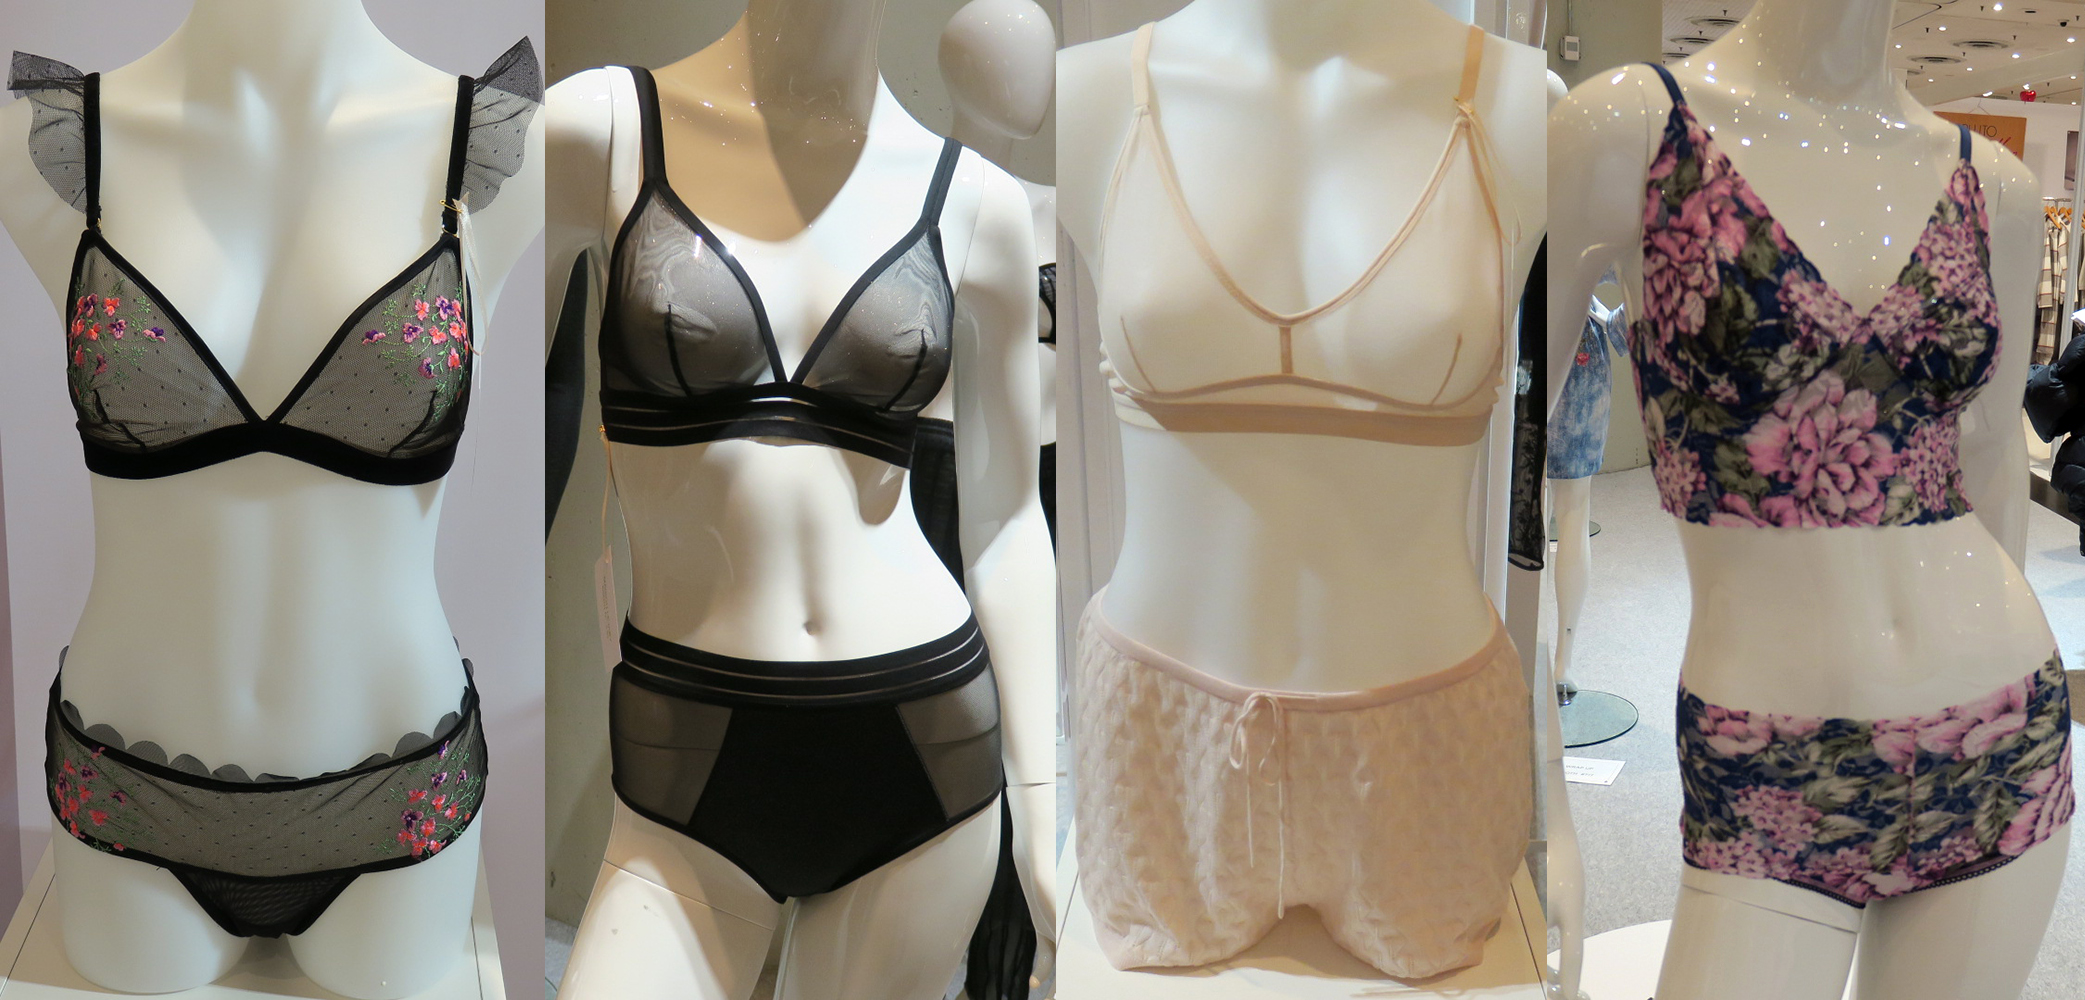 Much of modern lingerie is sleek and minimalistic c108b561e